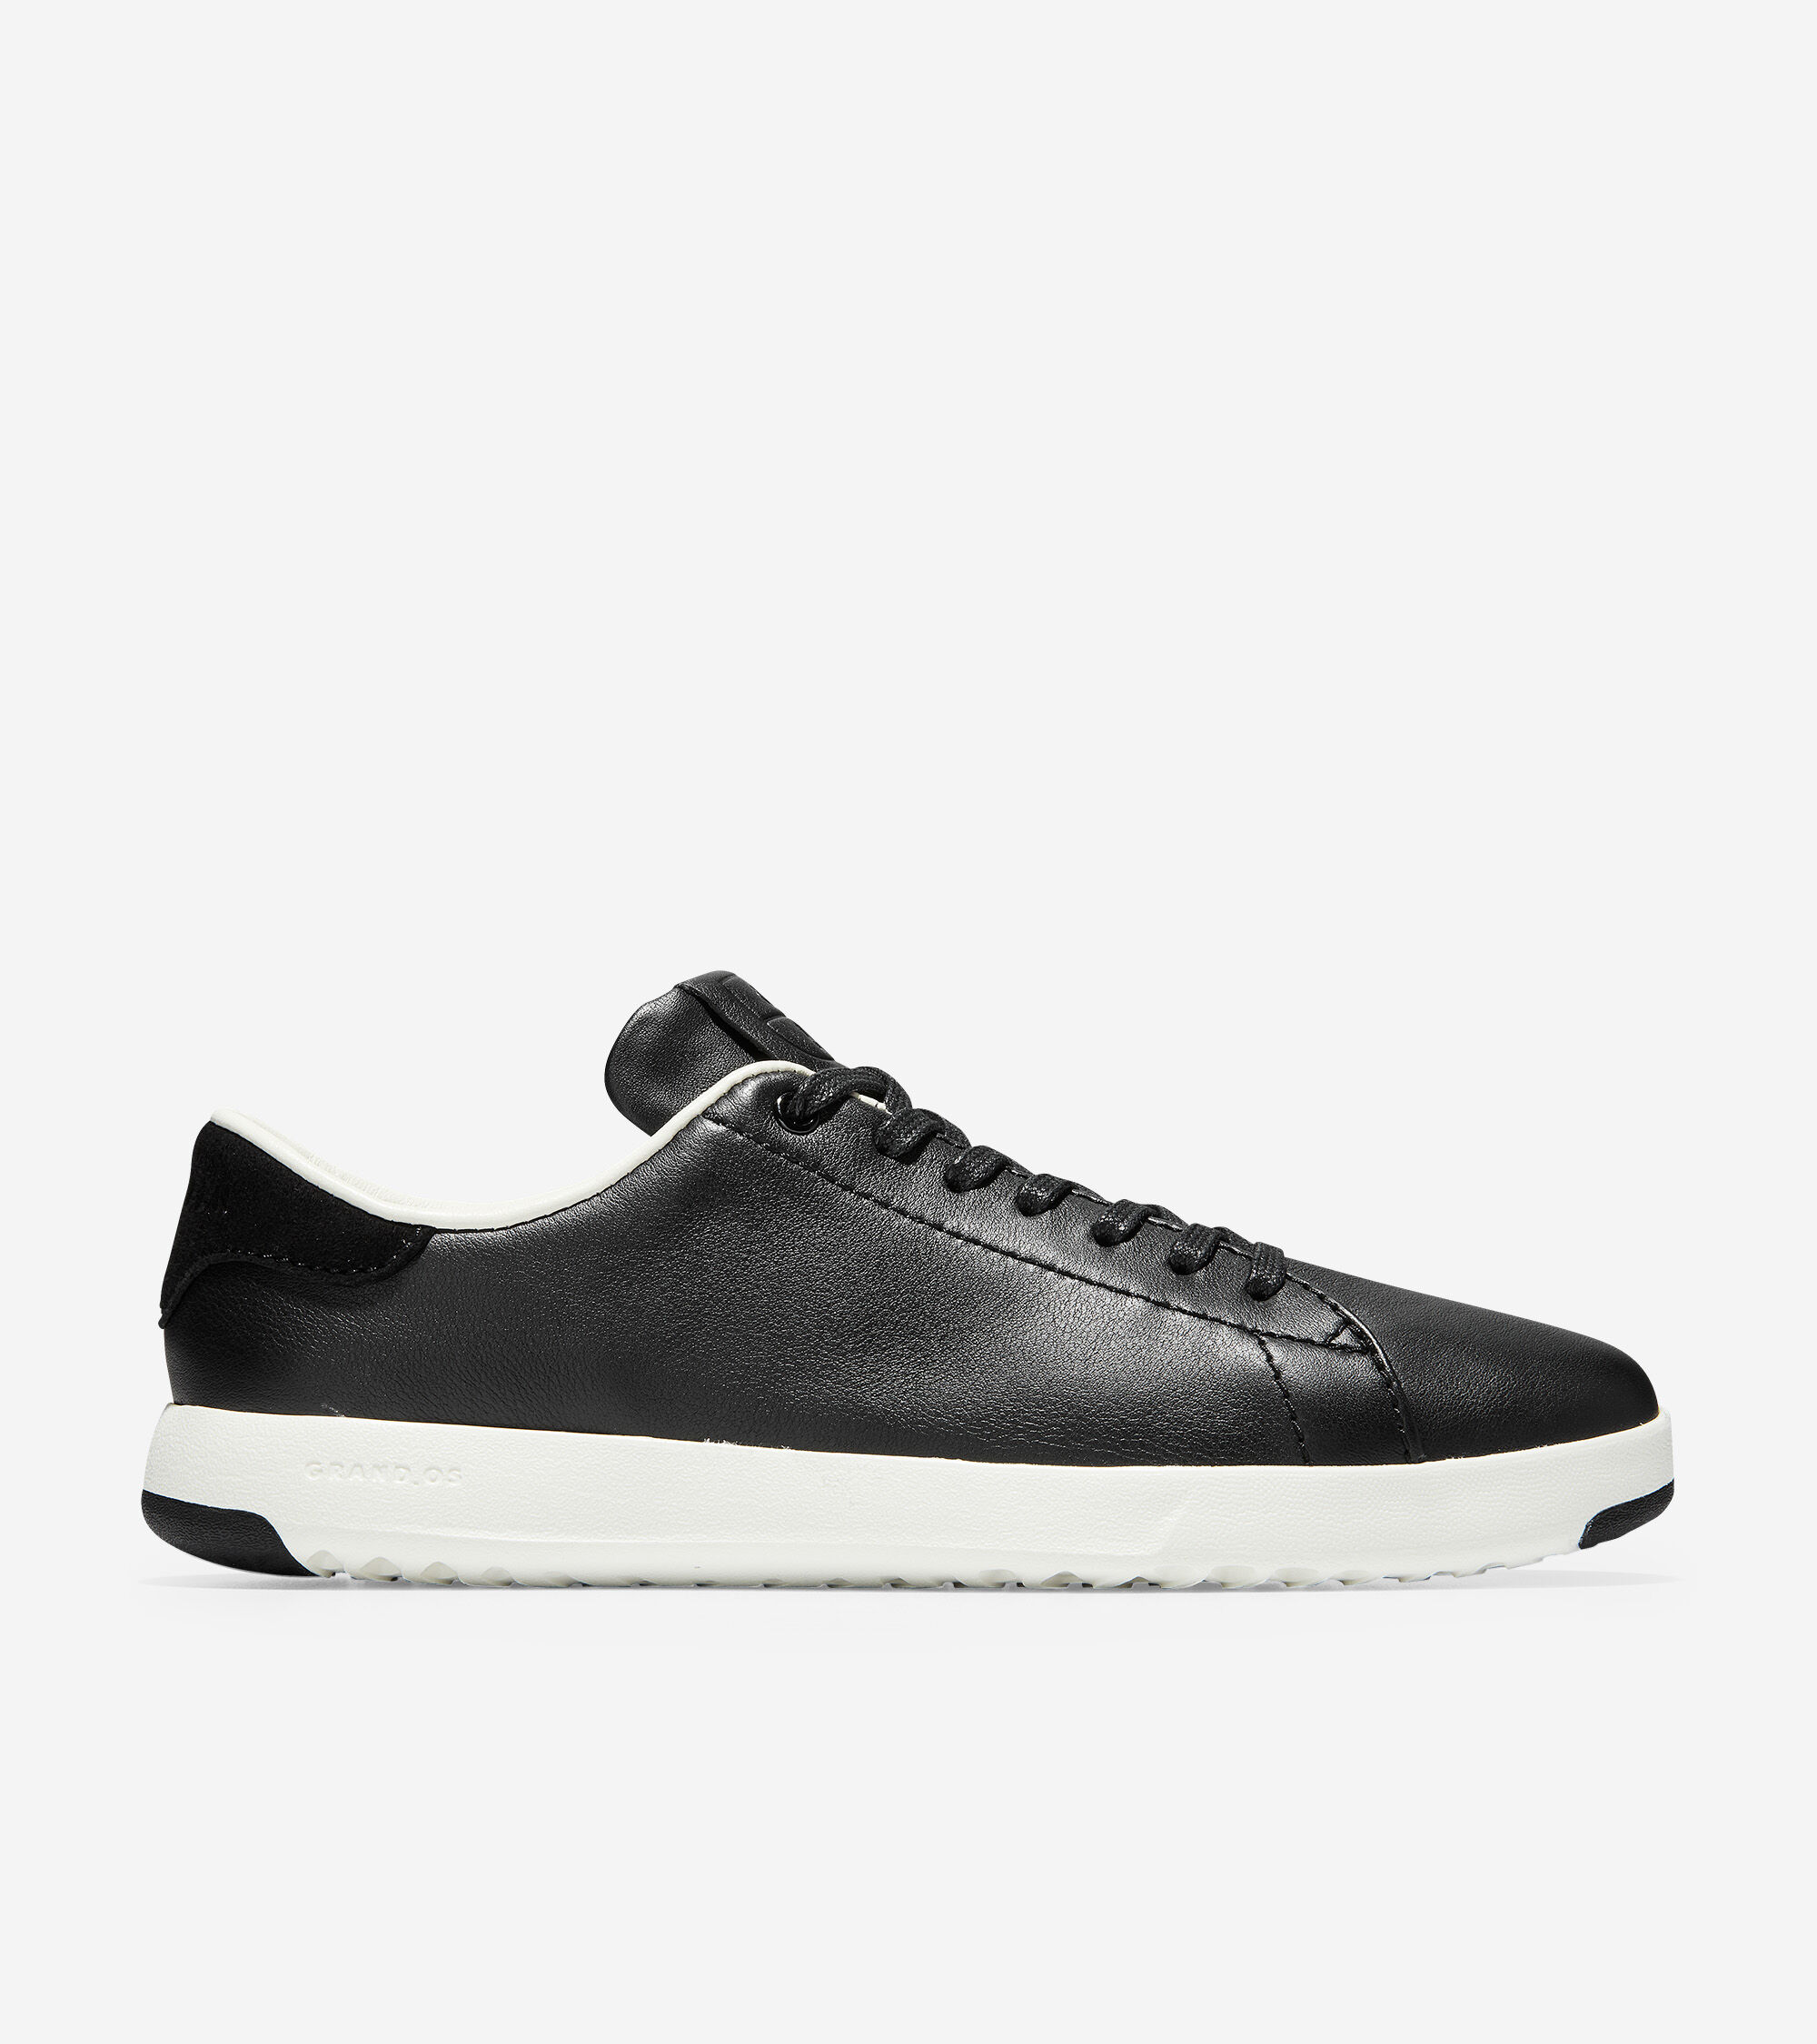 d63bff24c069 GrandPro Tennis Sneakers in Black-Optic White